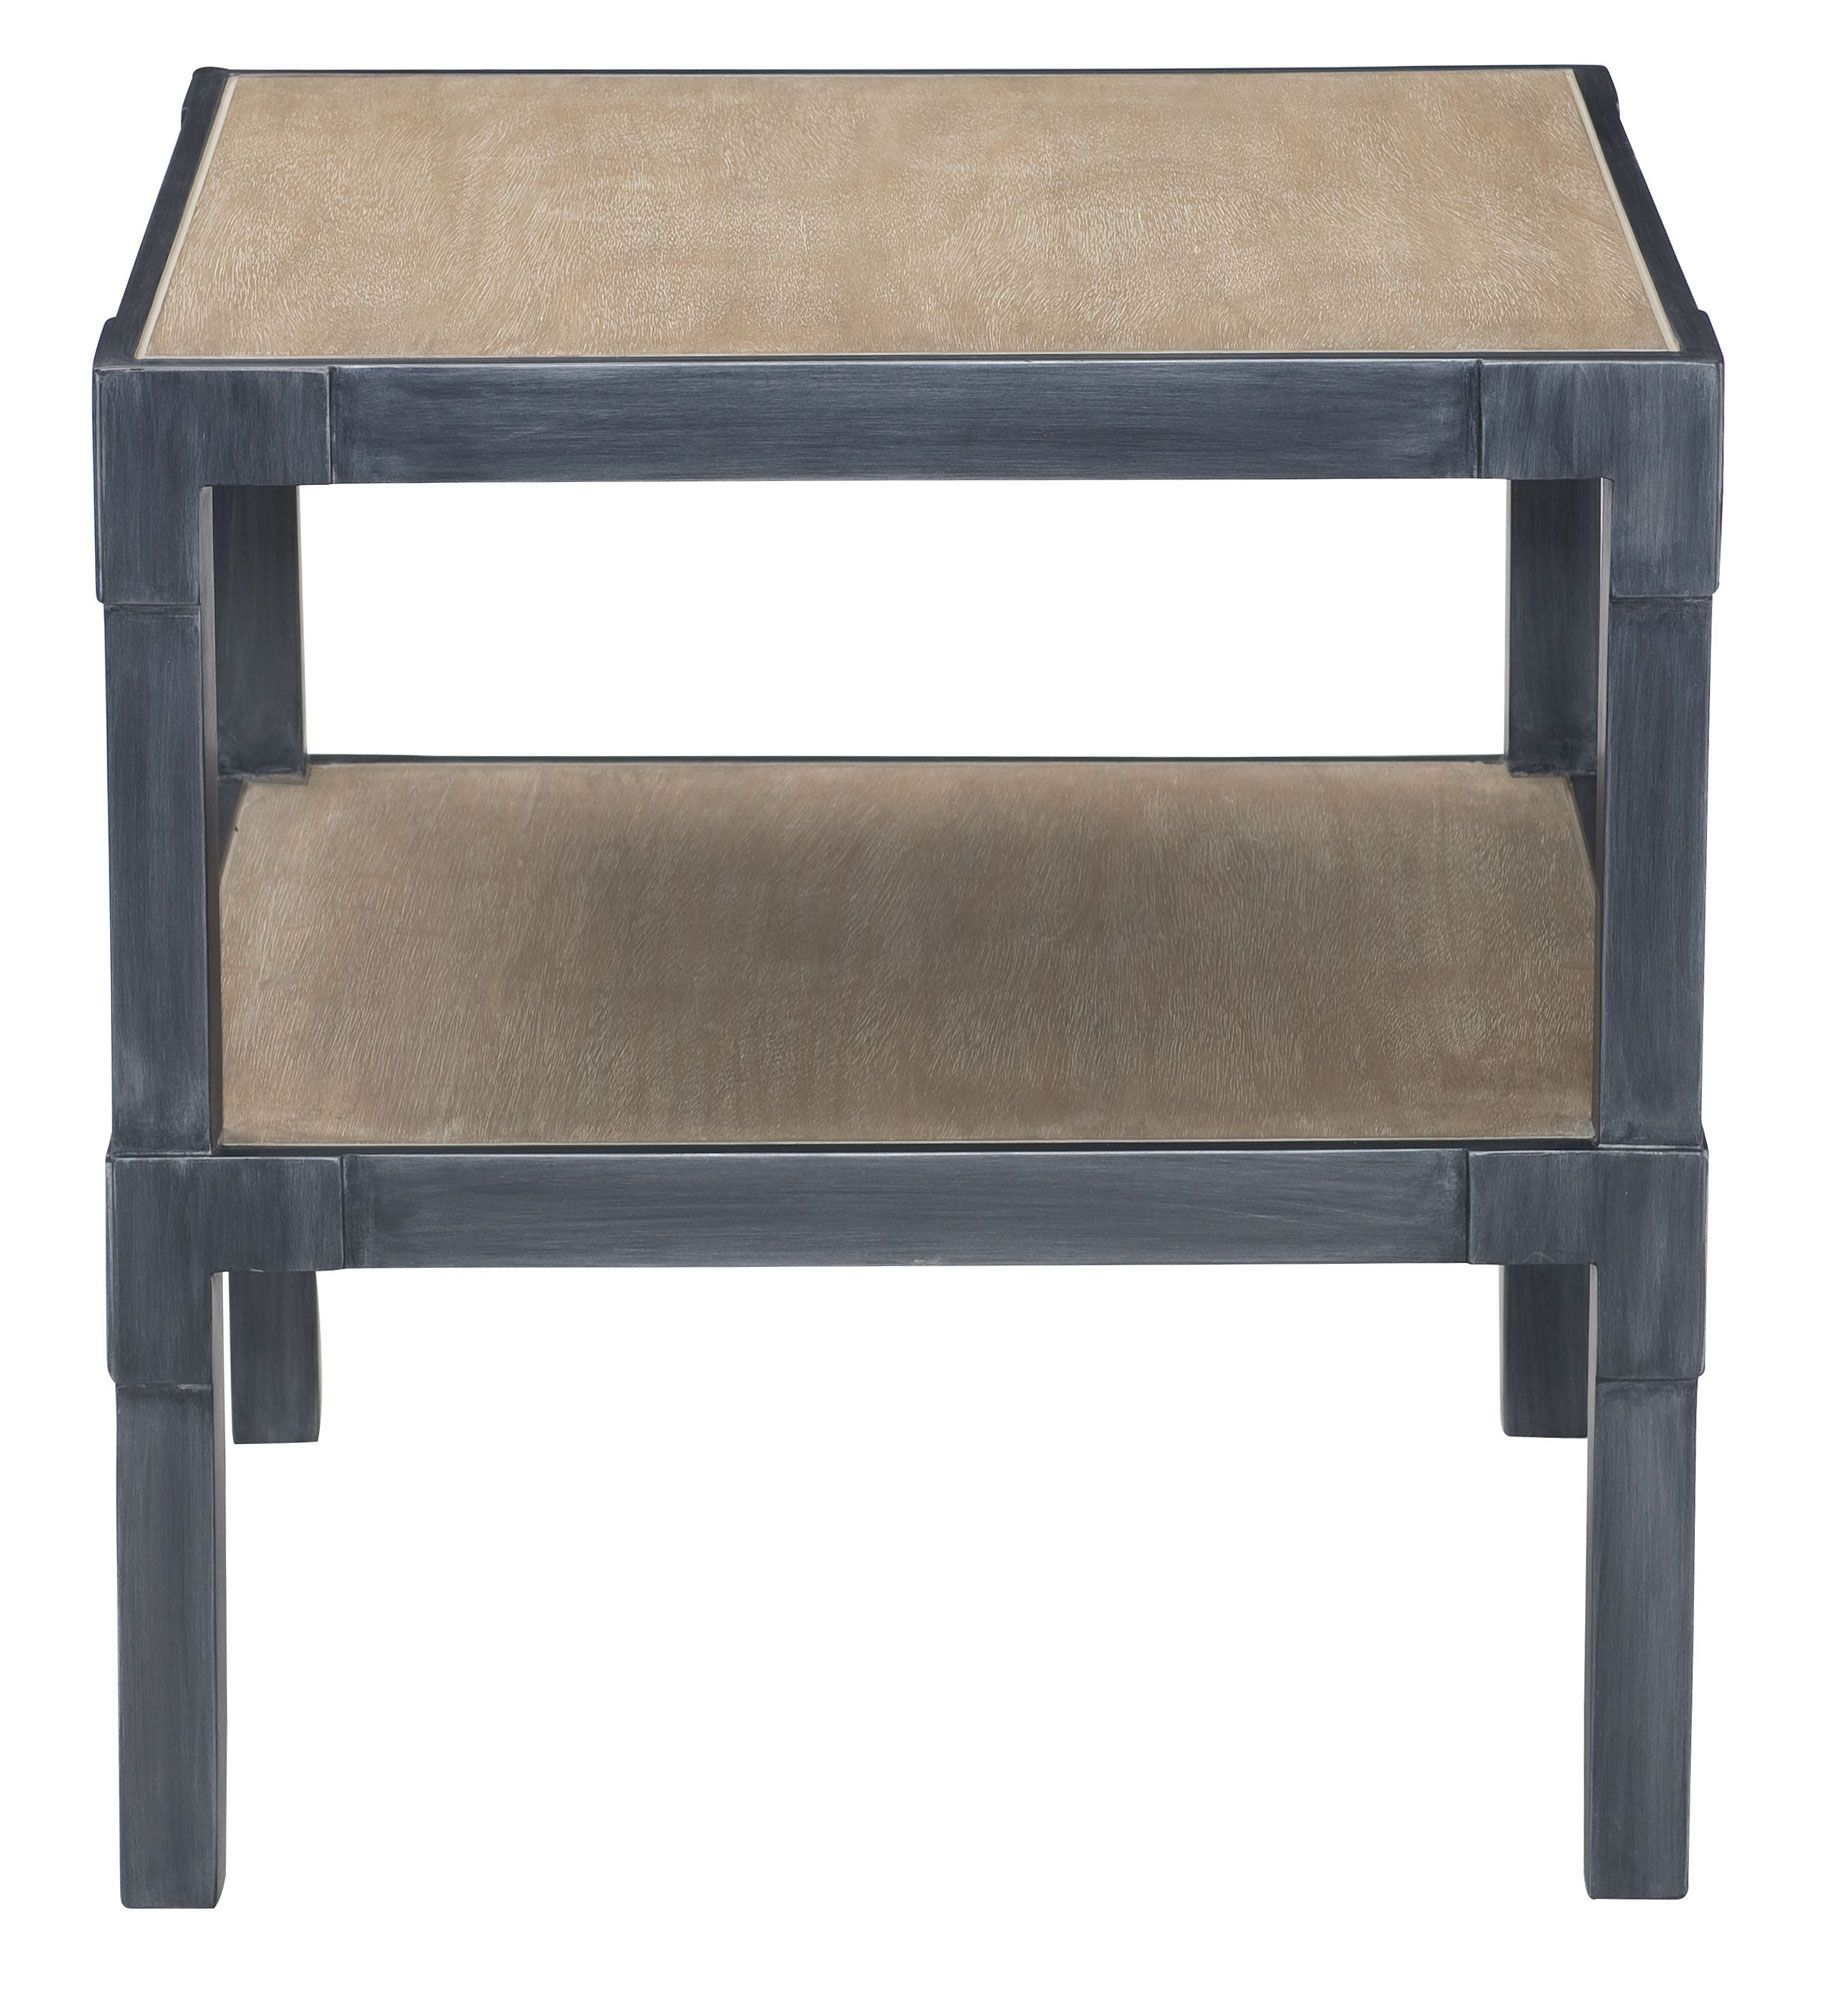 557 106 Saxton Side Table | Bernhardt W 24 D 24 H 24 Bleached Natural